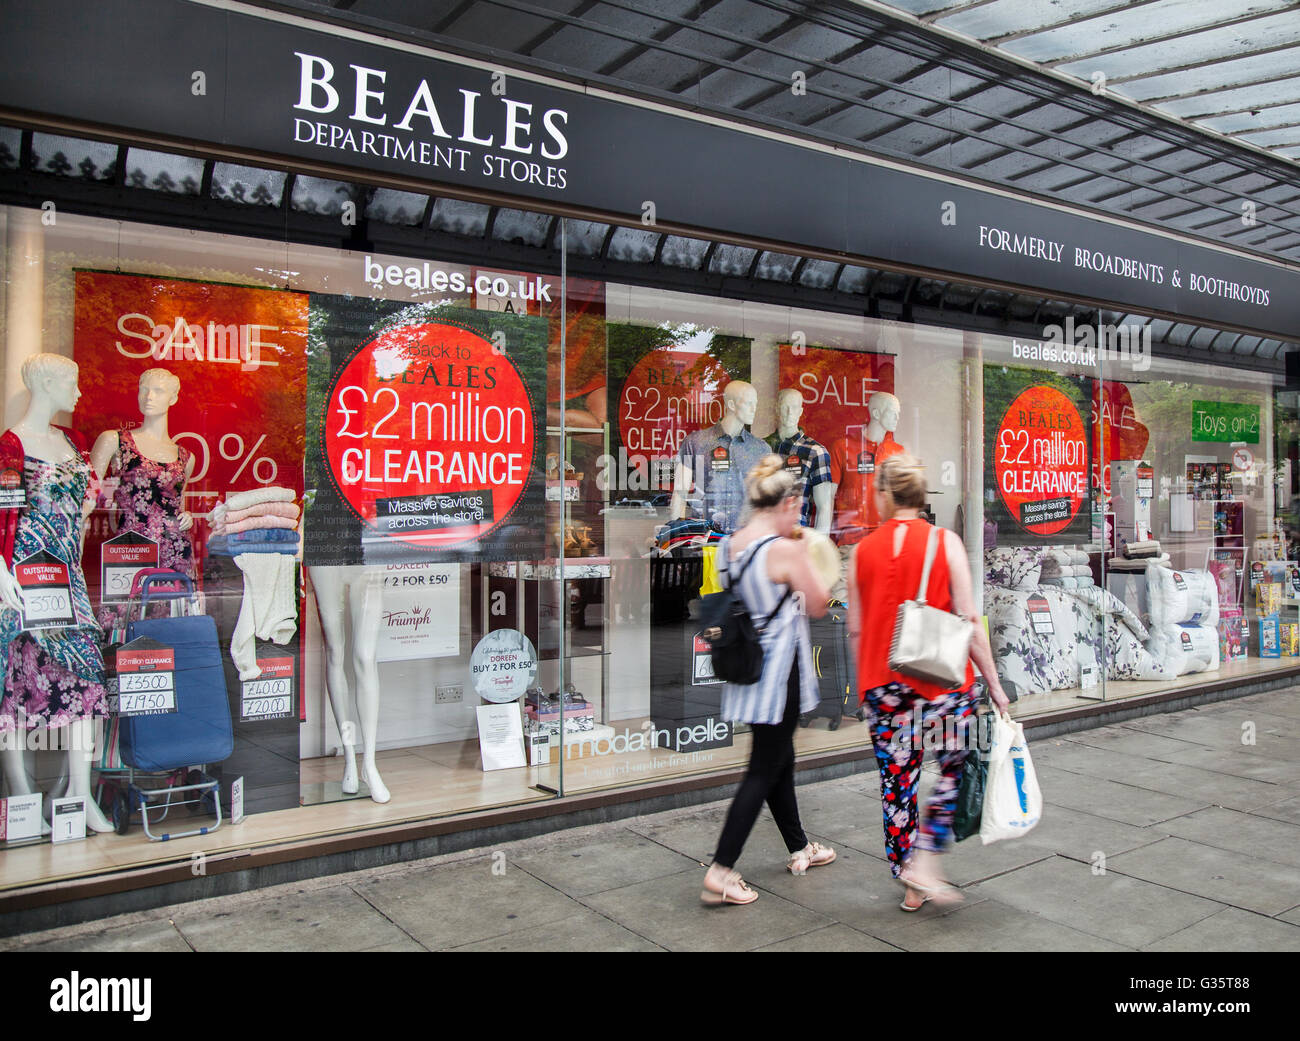 Lord Street, Southport, Merseyside, UK. BOURNEMOUTH-based Beales has announced it is to close one of its stores - Stock Image